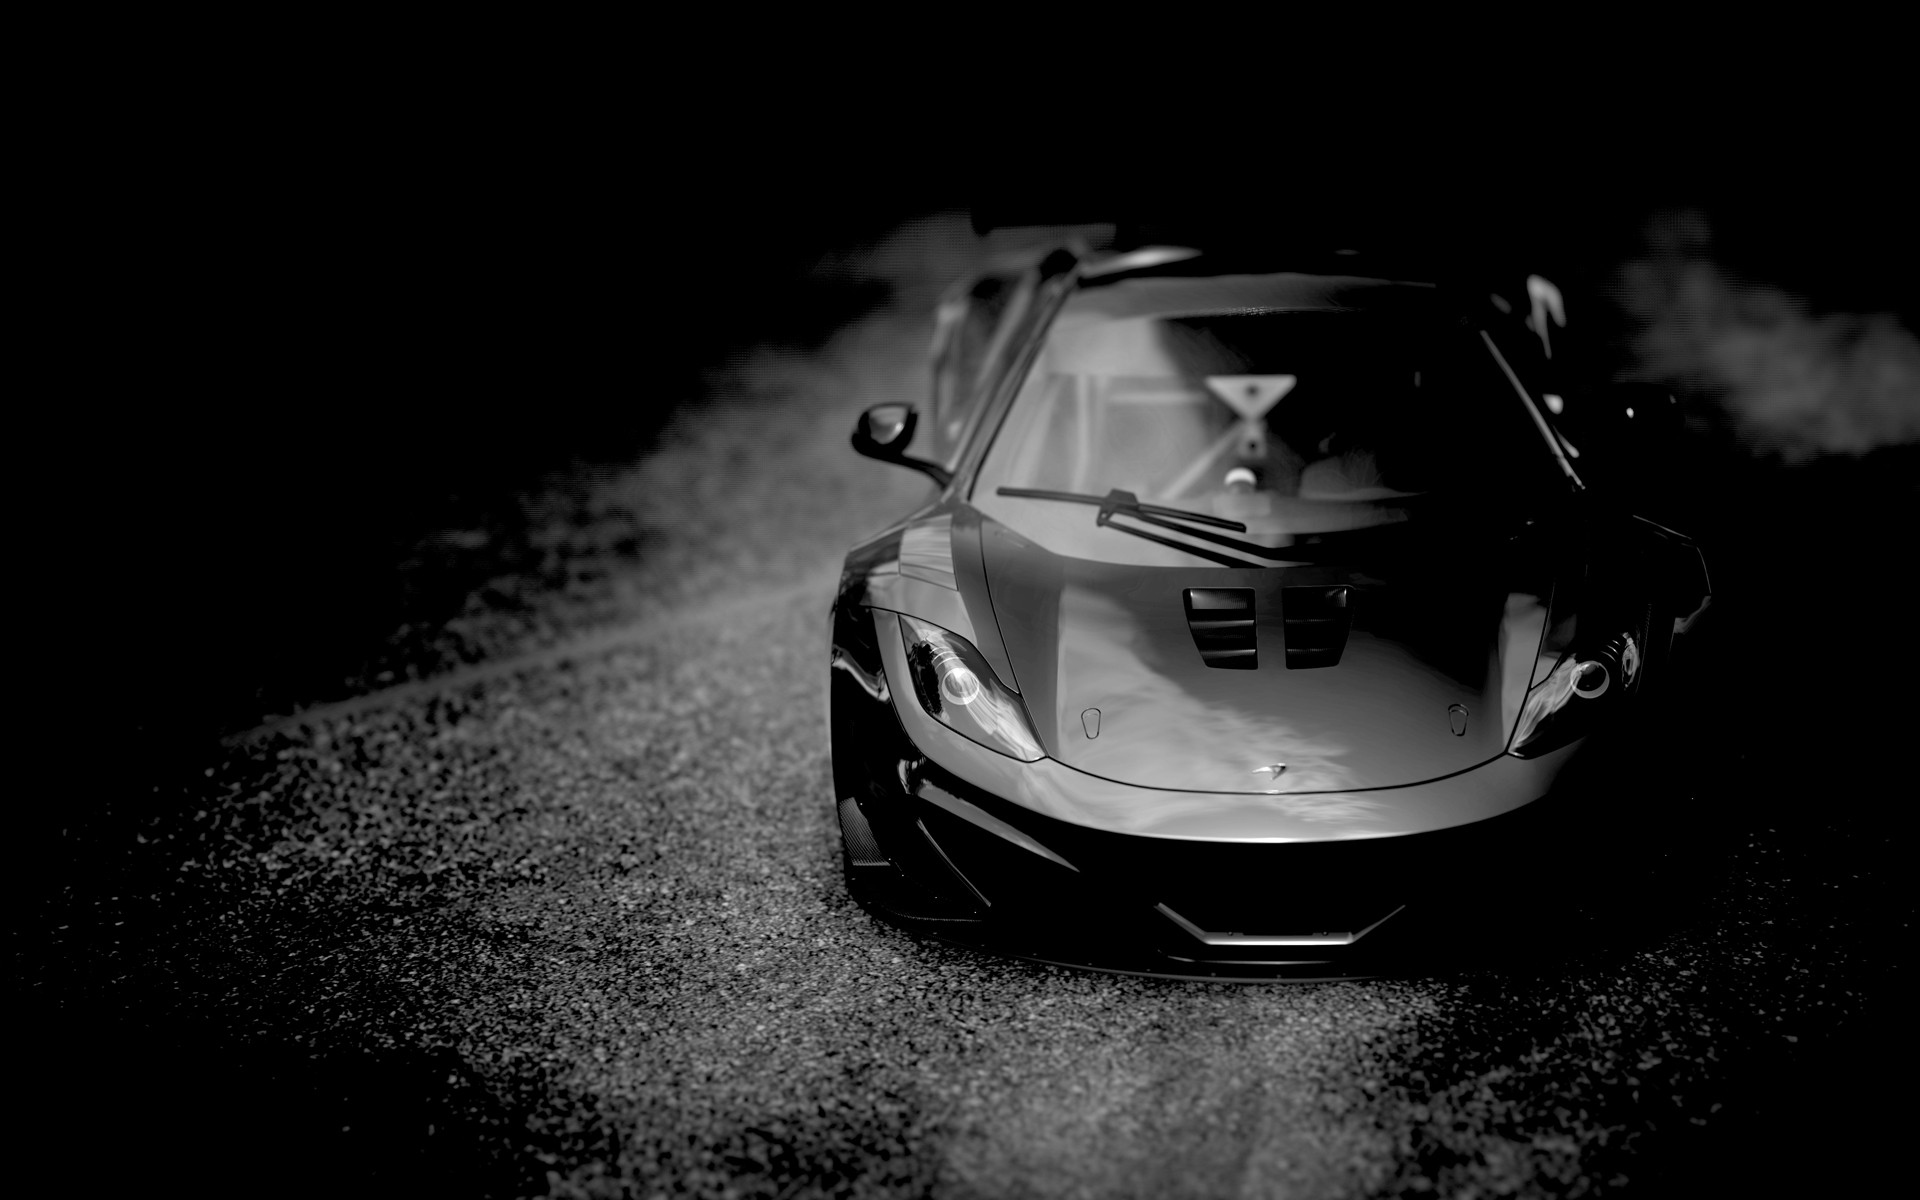 Mclaren mp4 monochrome